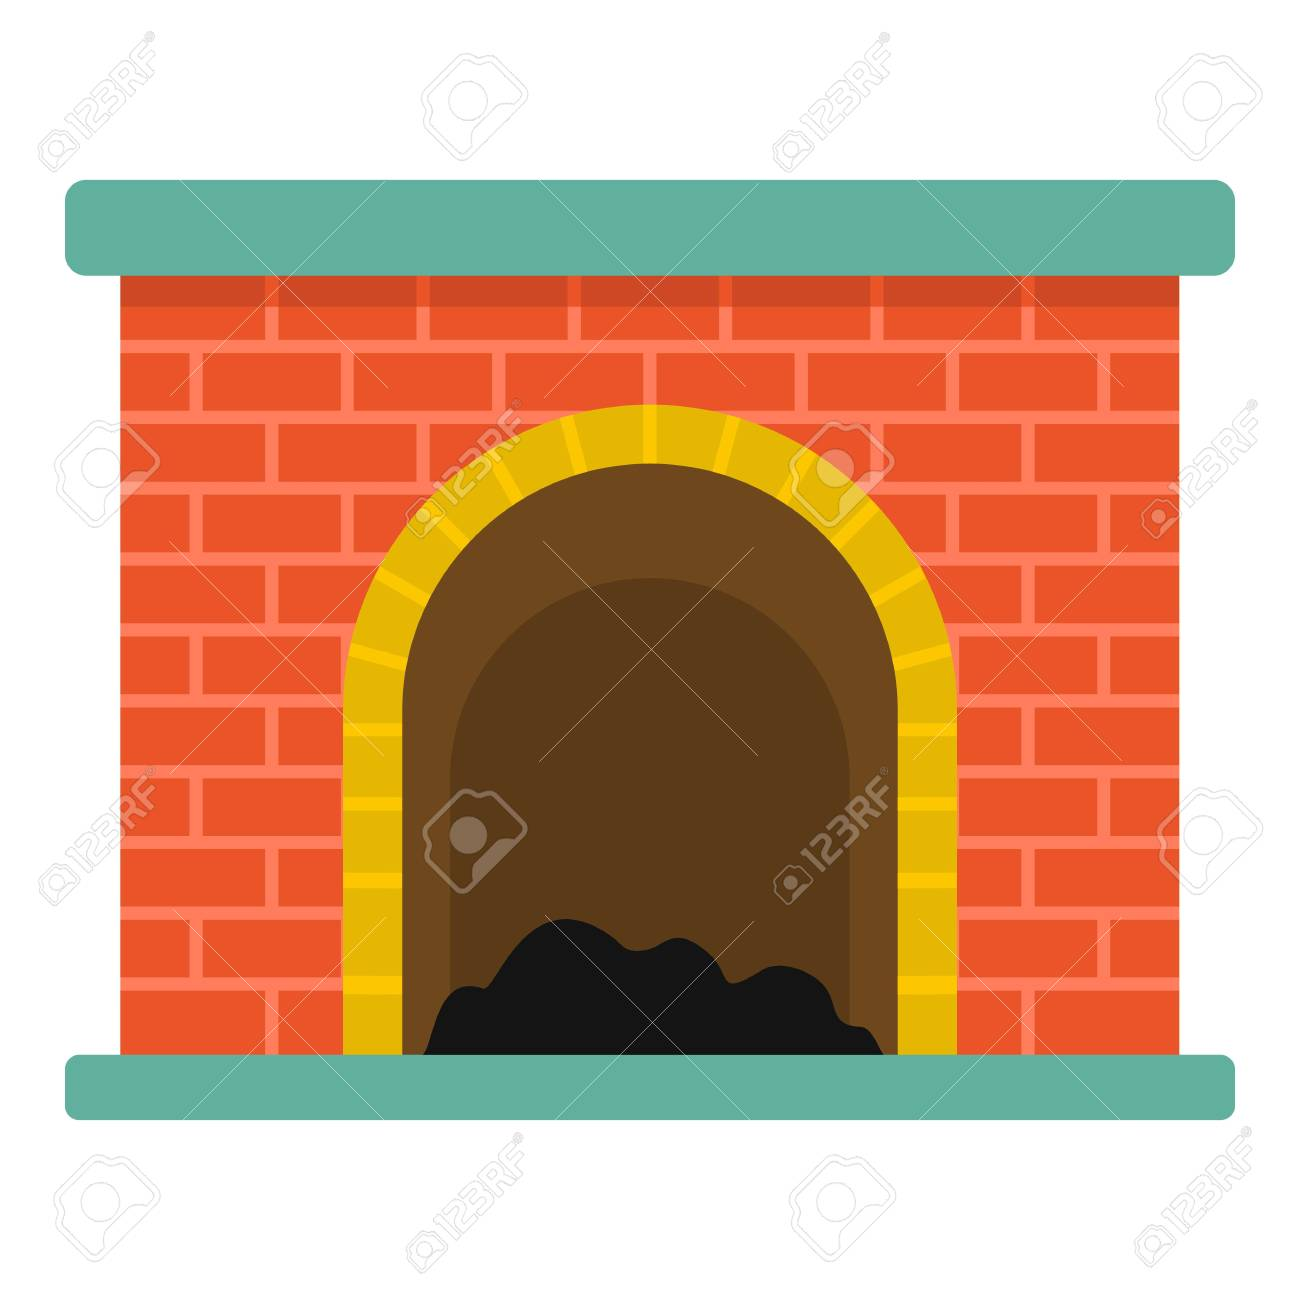 Brick Fireplace Icon Cartoon Illustration Of Brick Fireplace